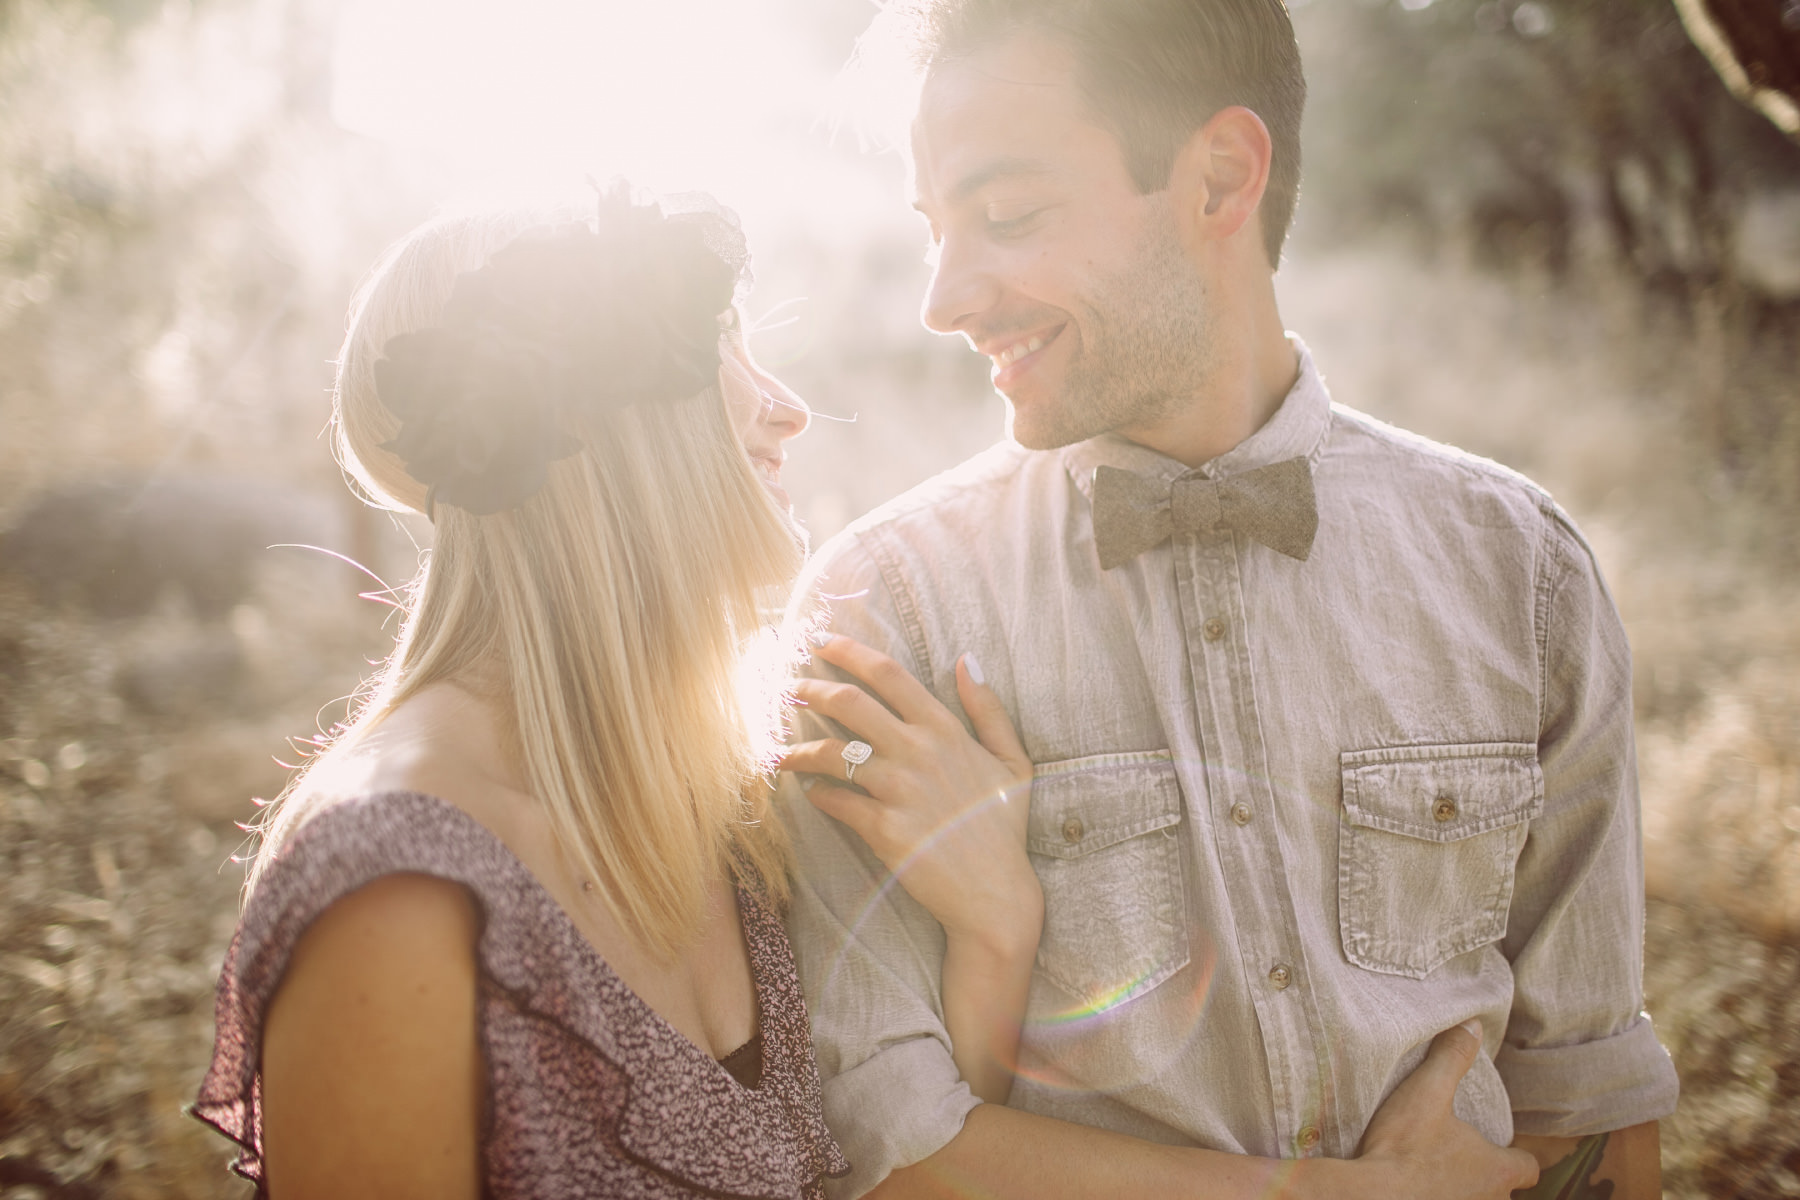 Cute couple smiling at each other with intense sun flares